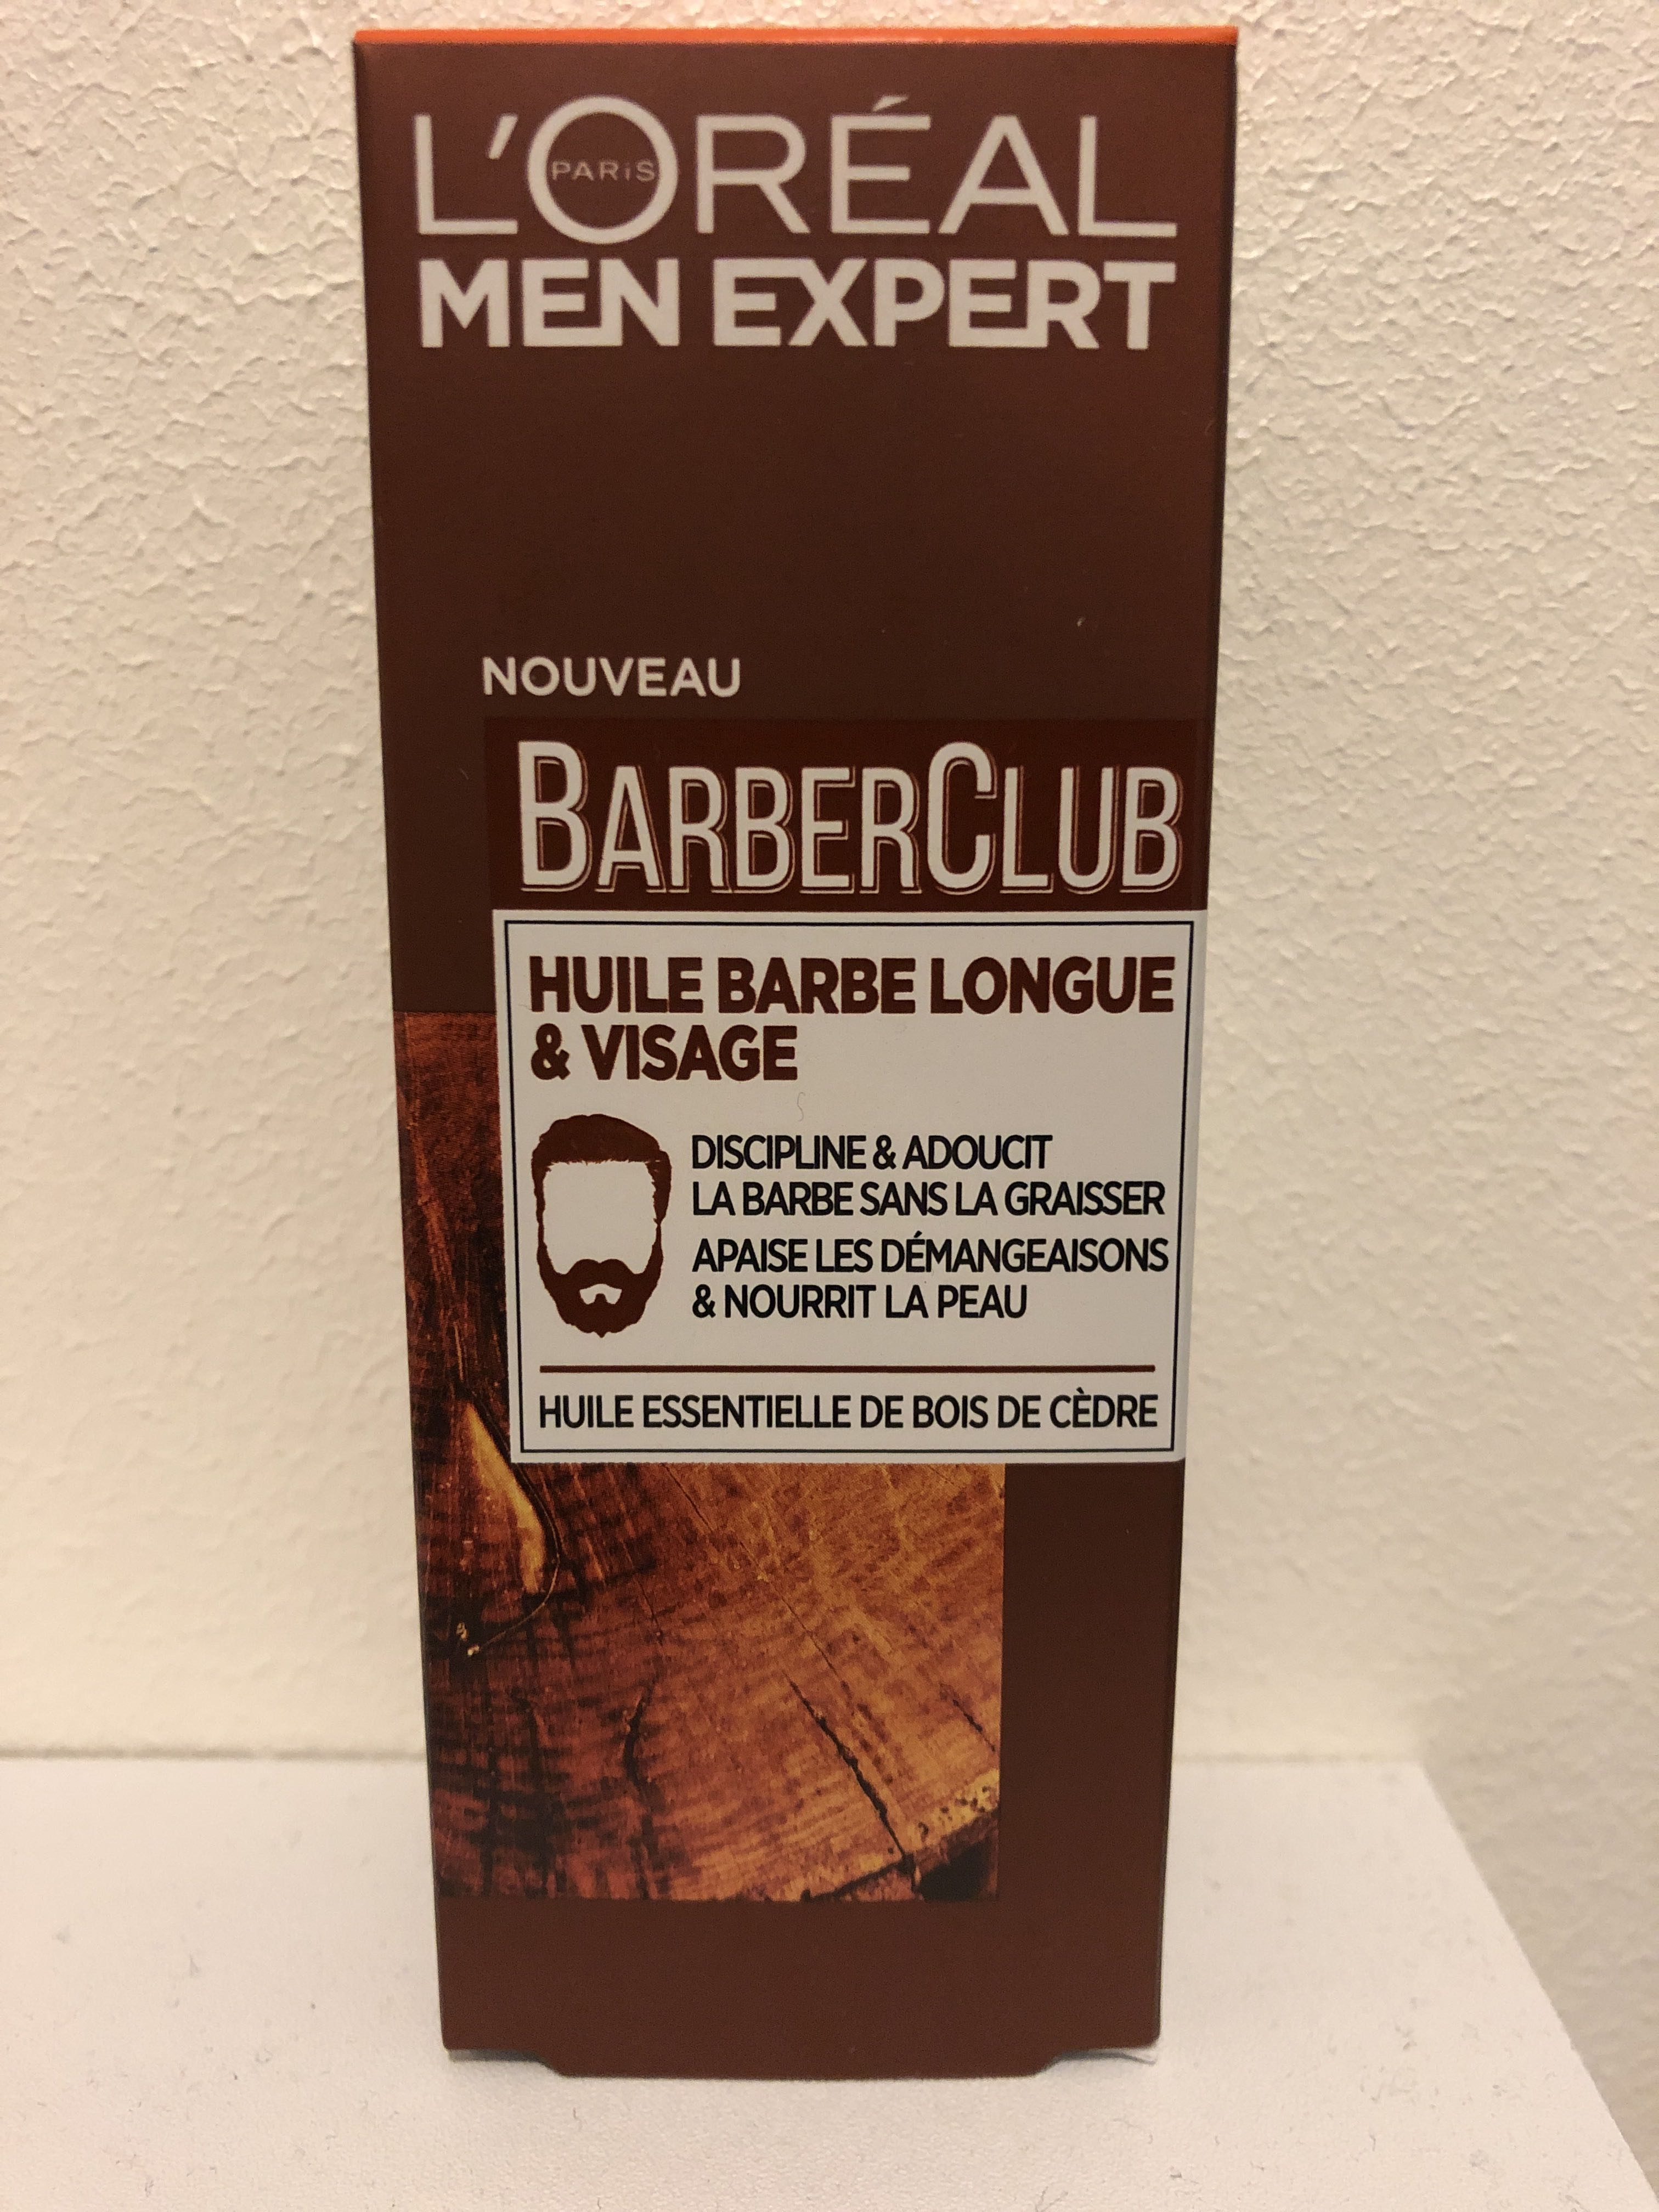 Huile barbe longue & visage - Product - fr